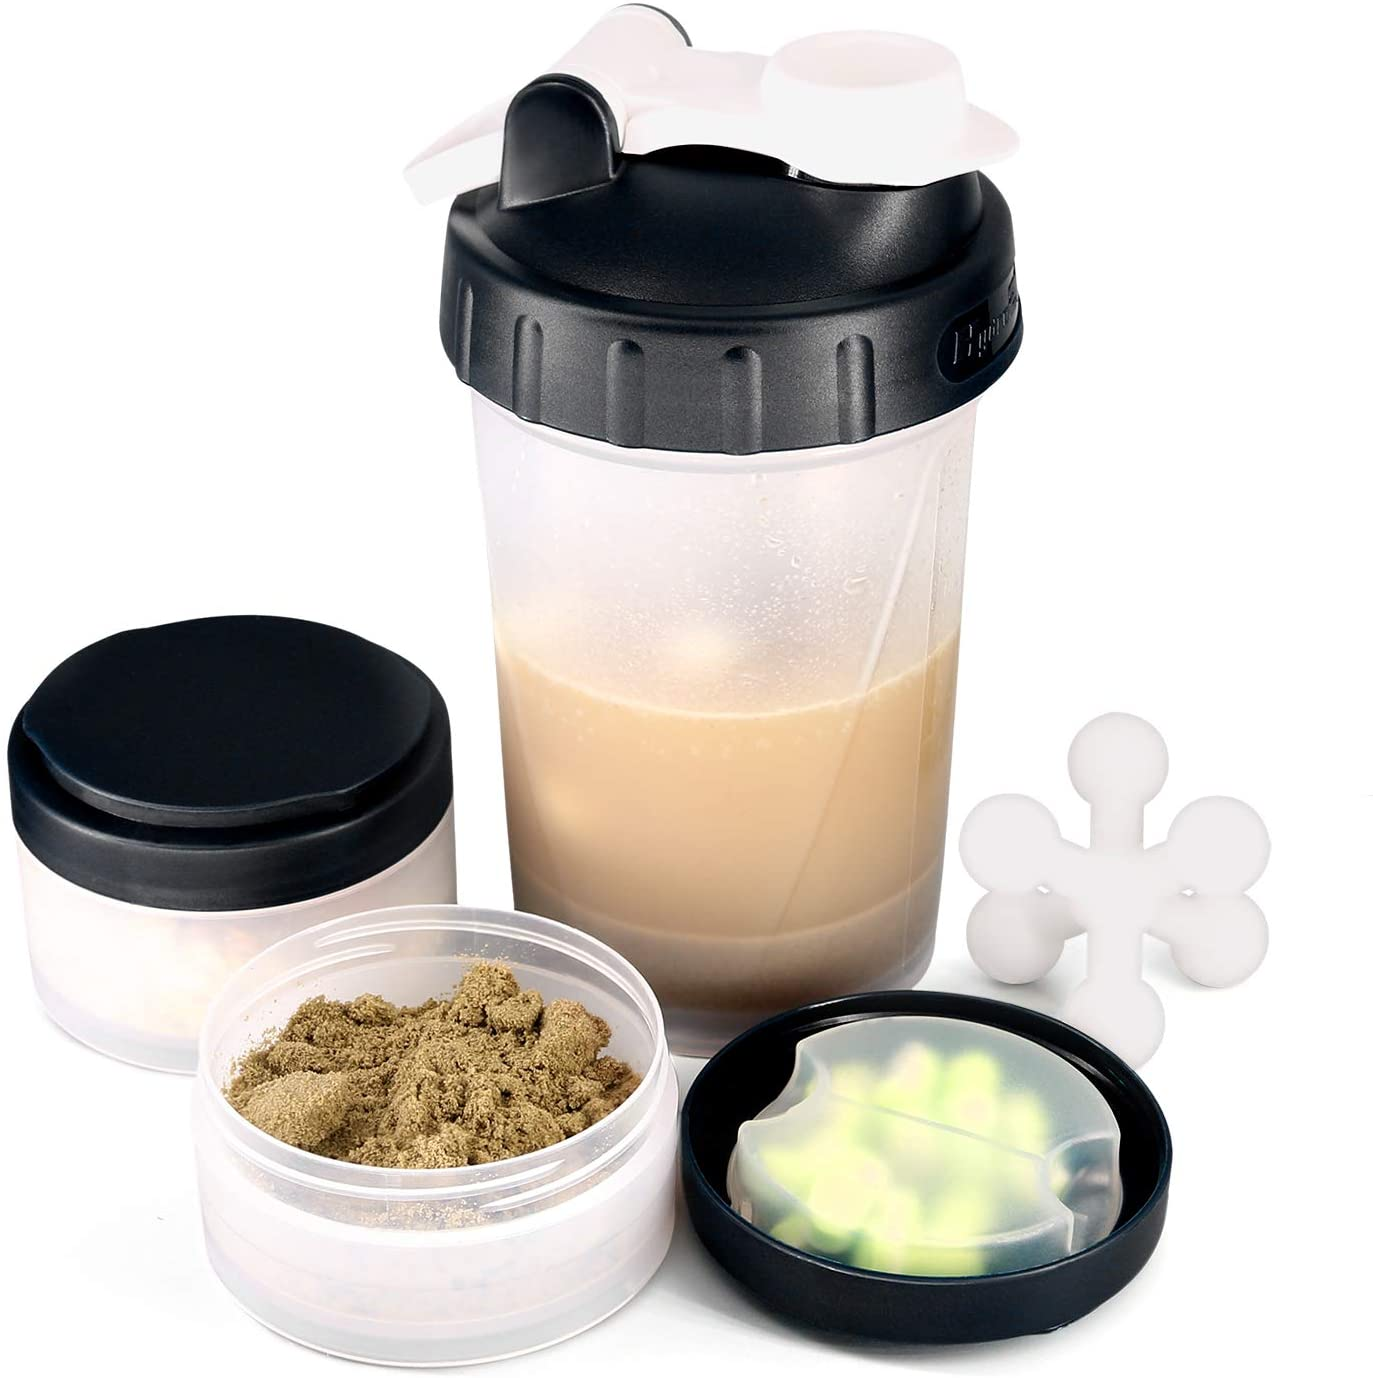 16 OZ Protein Shaker Bottle with Mixer Ball and 2 Interlocking Storage Jars for Pills, Snacks, Coffee, Tea. 100% BPA Free,Non Toxic and Leak Proof Sports Bottle